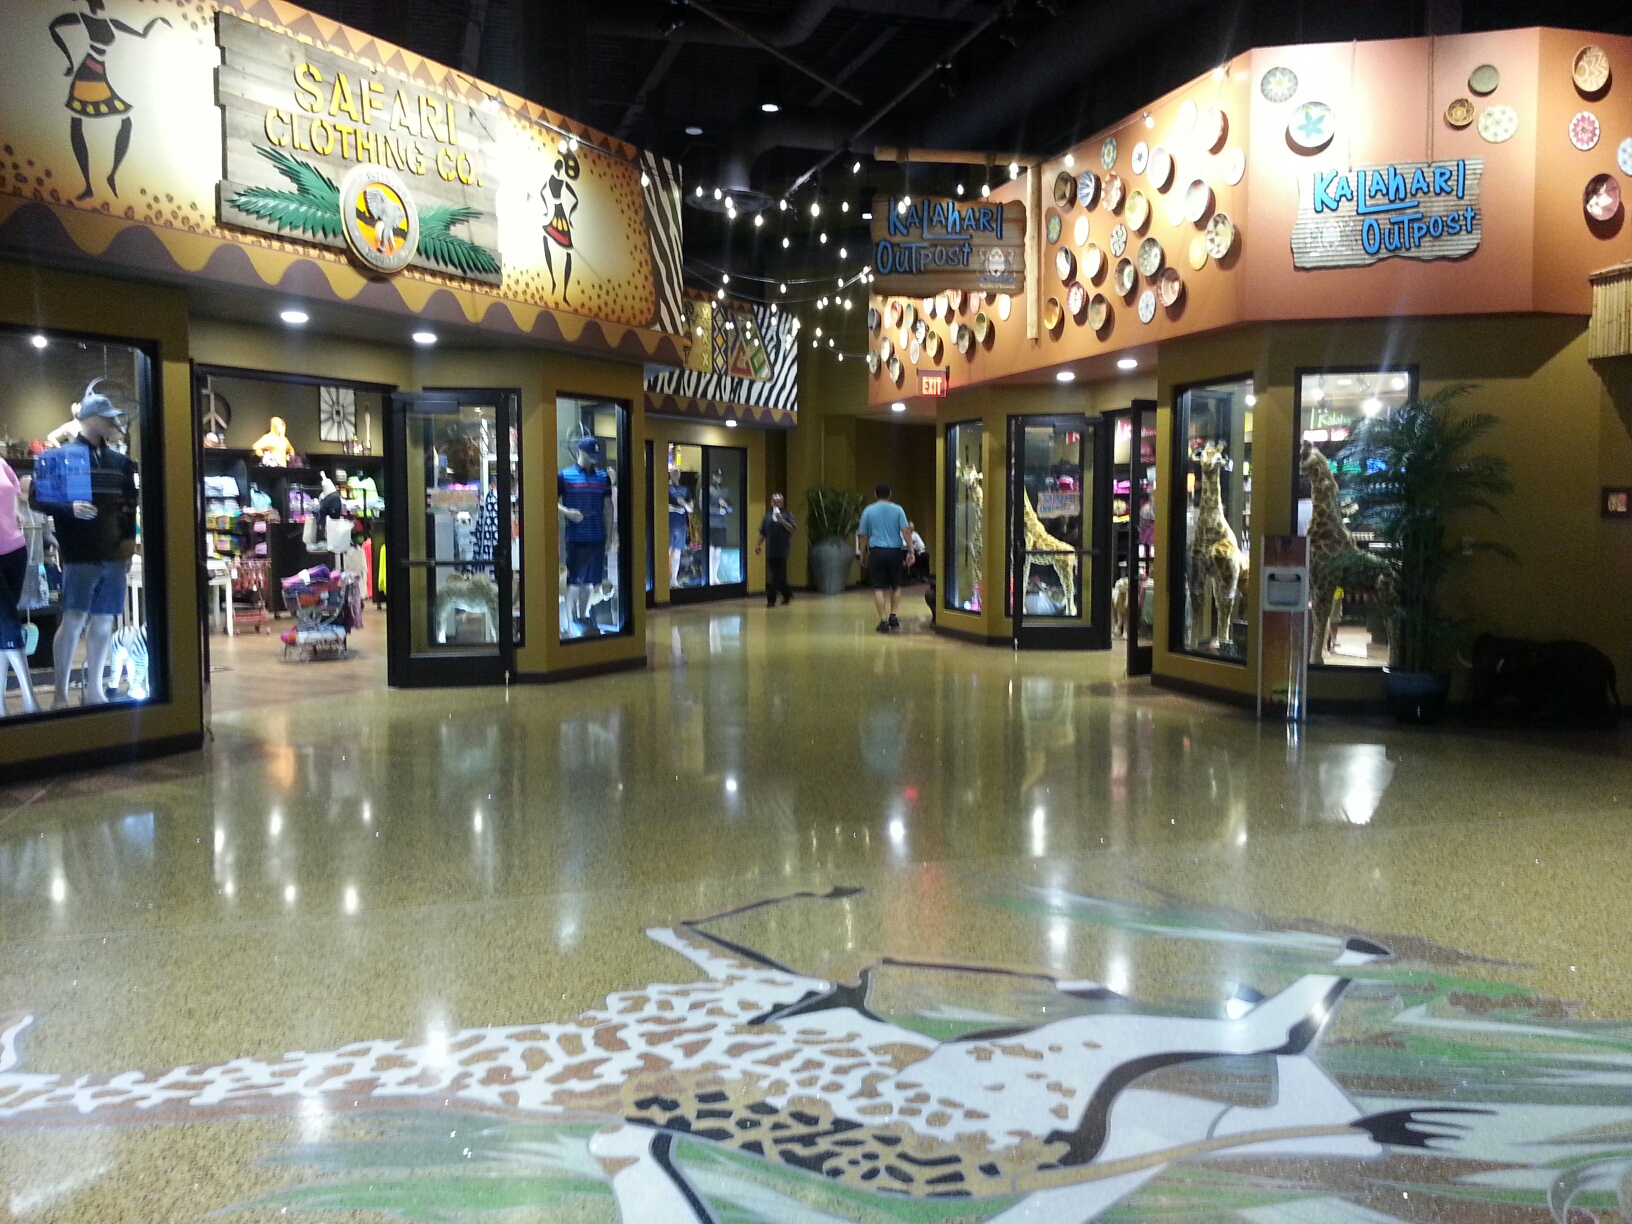 Kalahari Is Perfect For Families So It Makes Sense That Run By One The Nelson Family Owns And Runs Chain Of Resorts They Are A